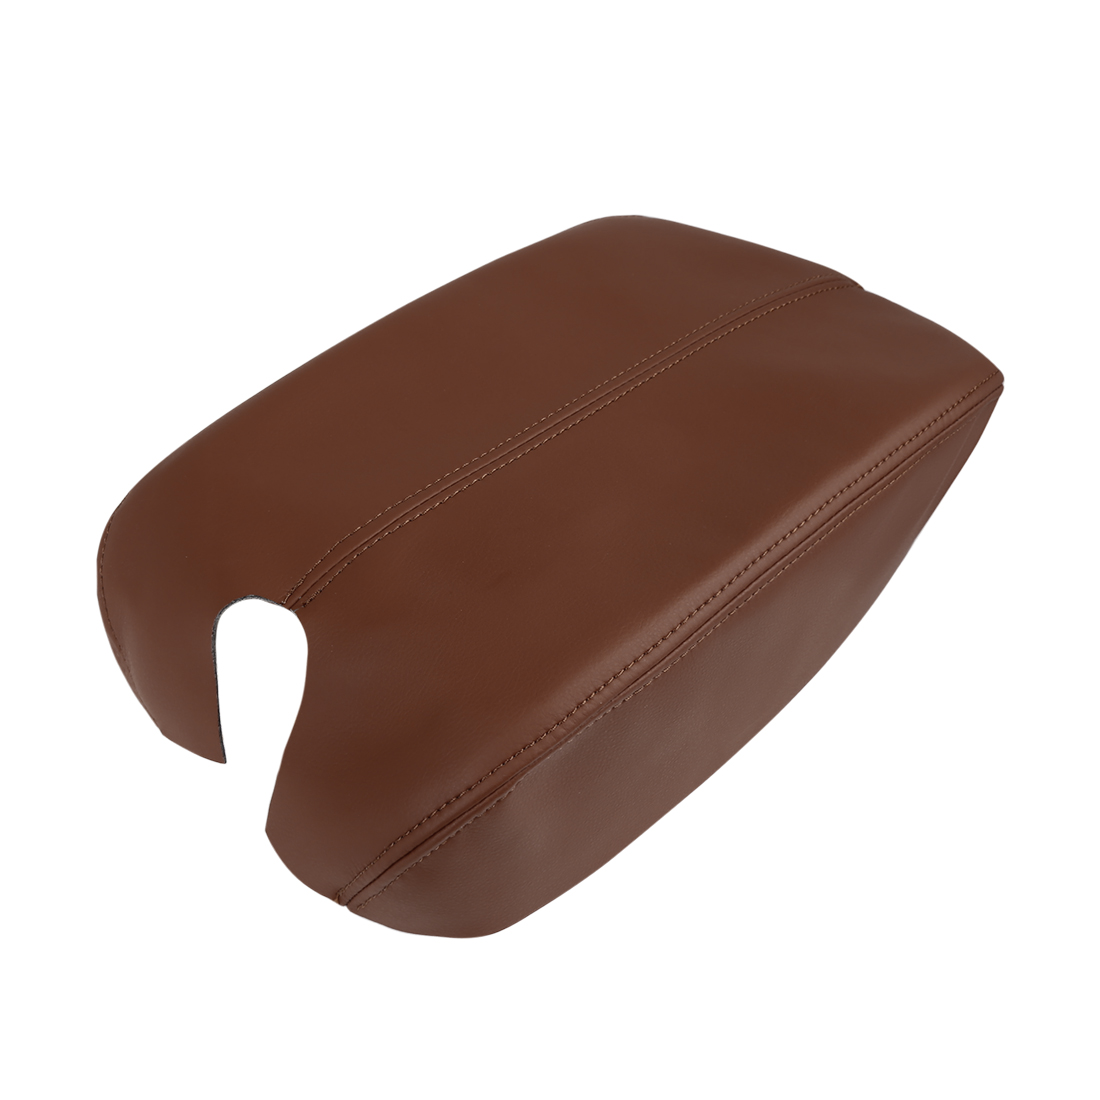 Microfiber Leather Center Console Armrest Cover Protector for 08-12 Honda Accord